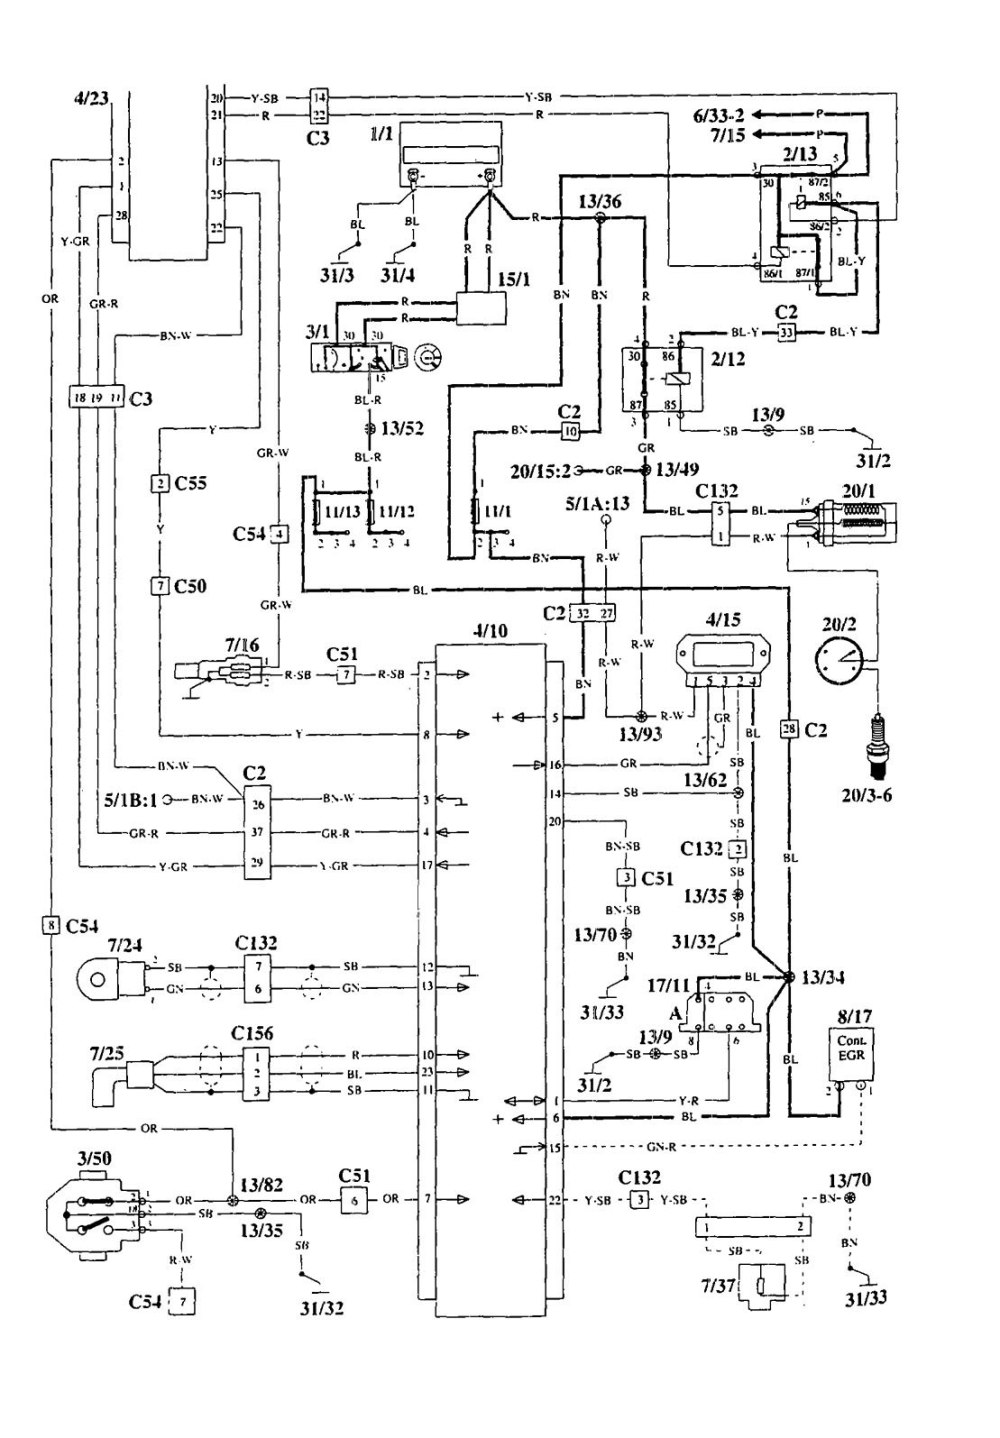 medium resolution of 1995 volvo 940 wiring diagram wiring diagram schematics 2004 volvo s40 wiring diagram 1995 volvo 940 ac wiring diagram